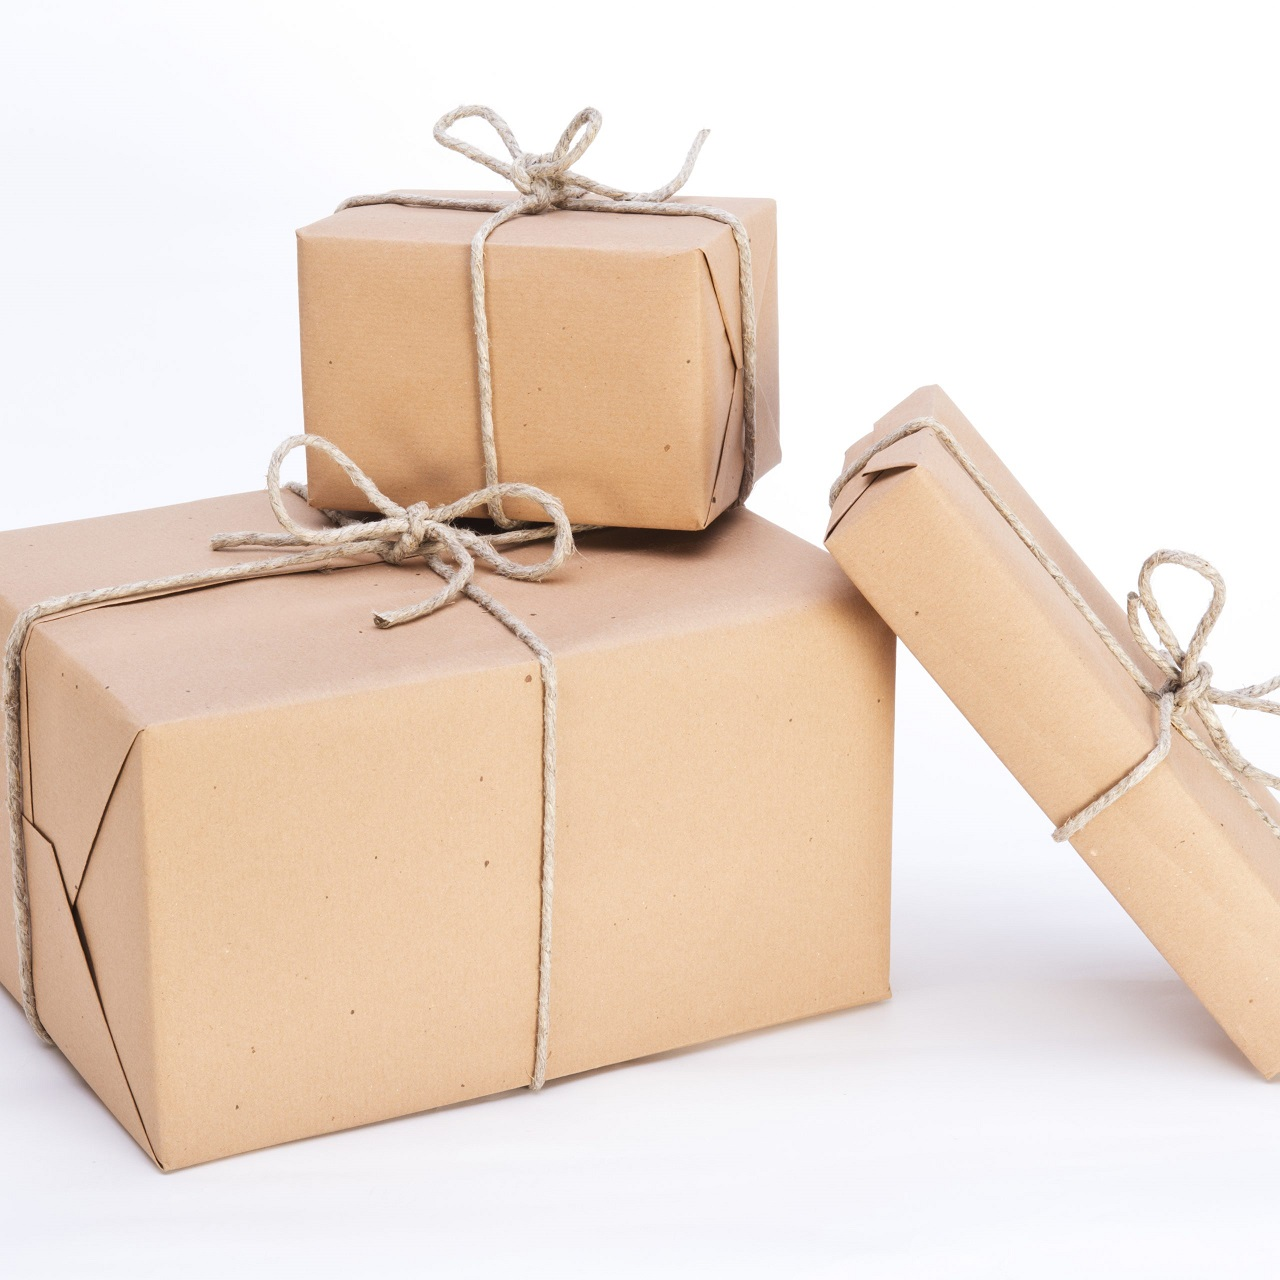 Packages-scaled.jpg